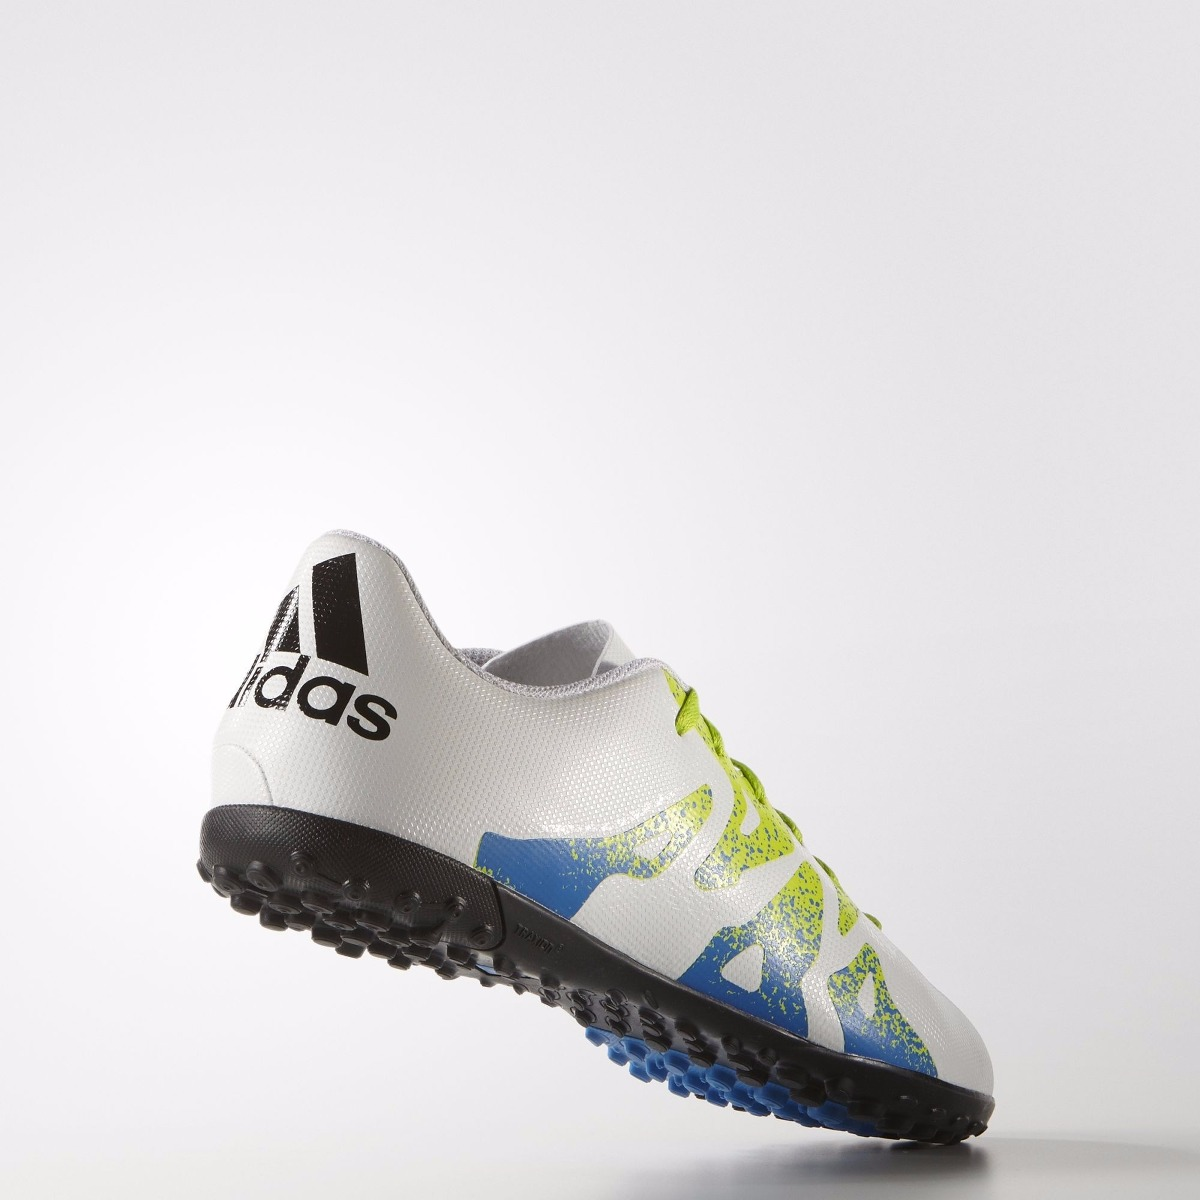 ad1c4ad454 ... best 4e039 d70ee zapatos futbol soccer x 15.4 turf hombre adidas s74610.